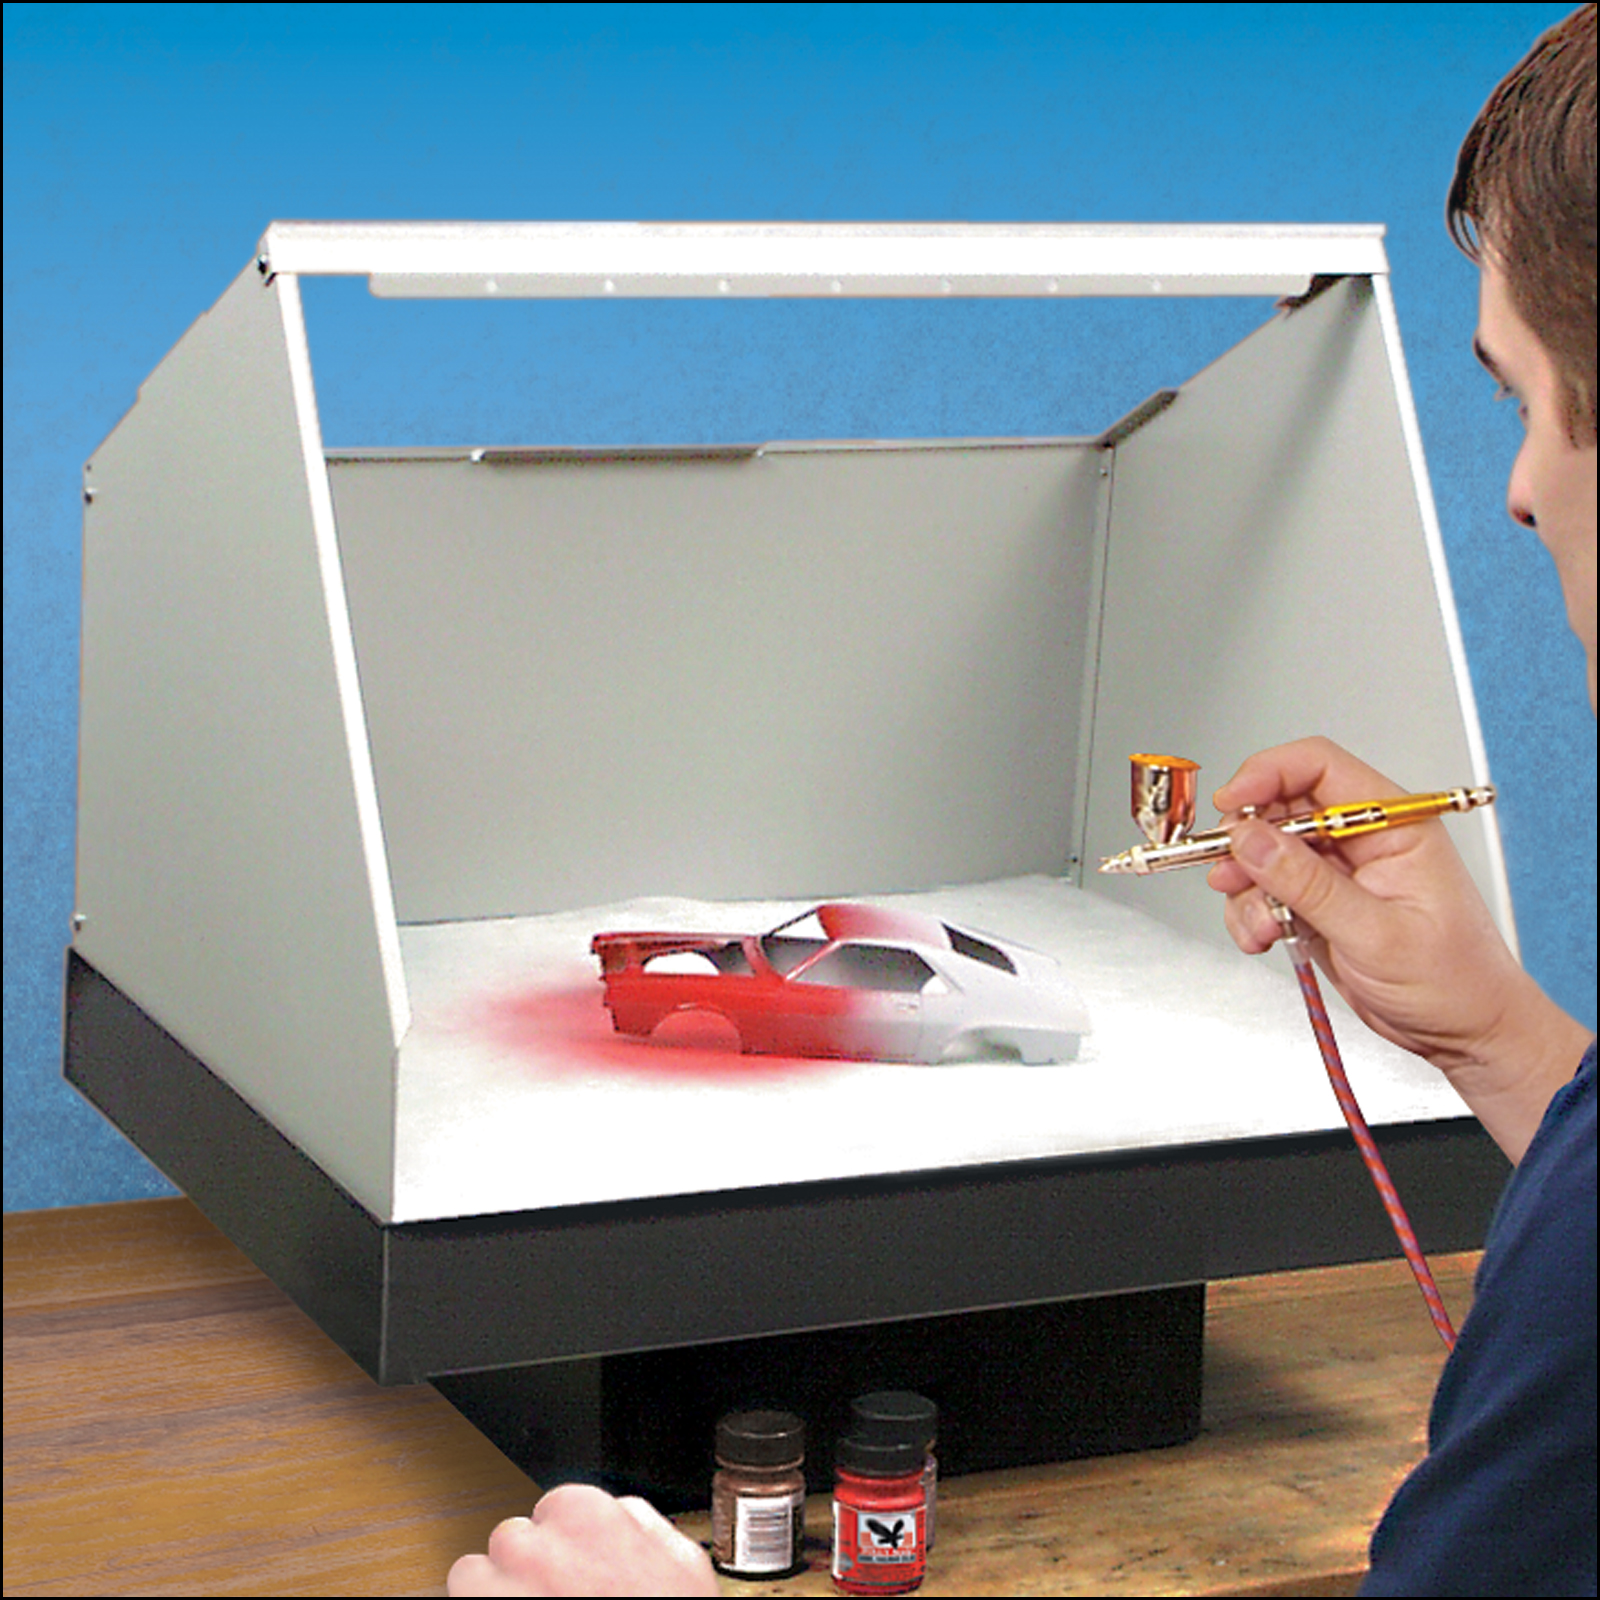 15 Inch X 20 Inch Standard Spray Paint Booth